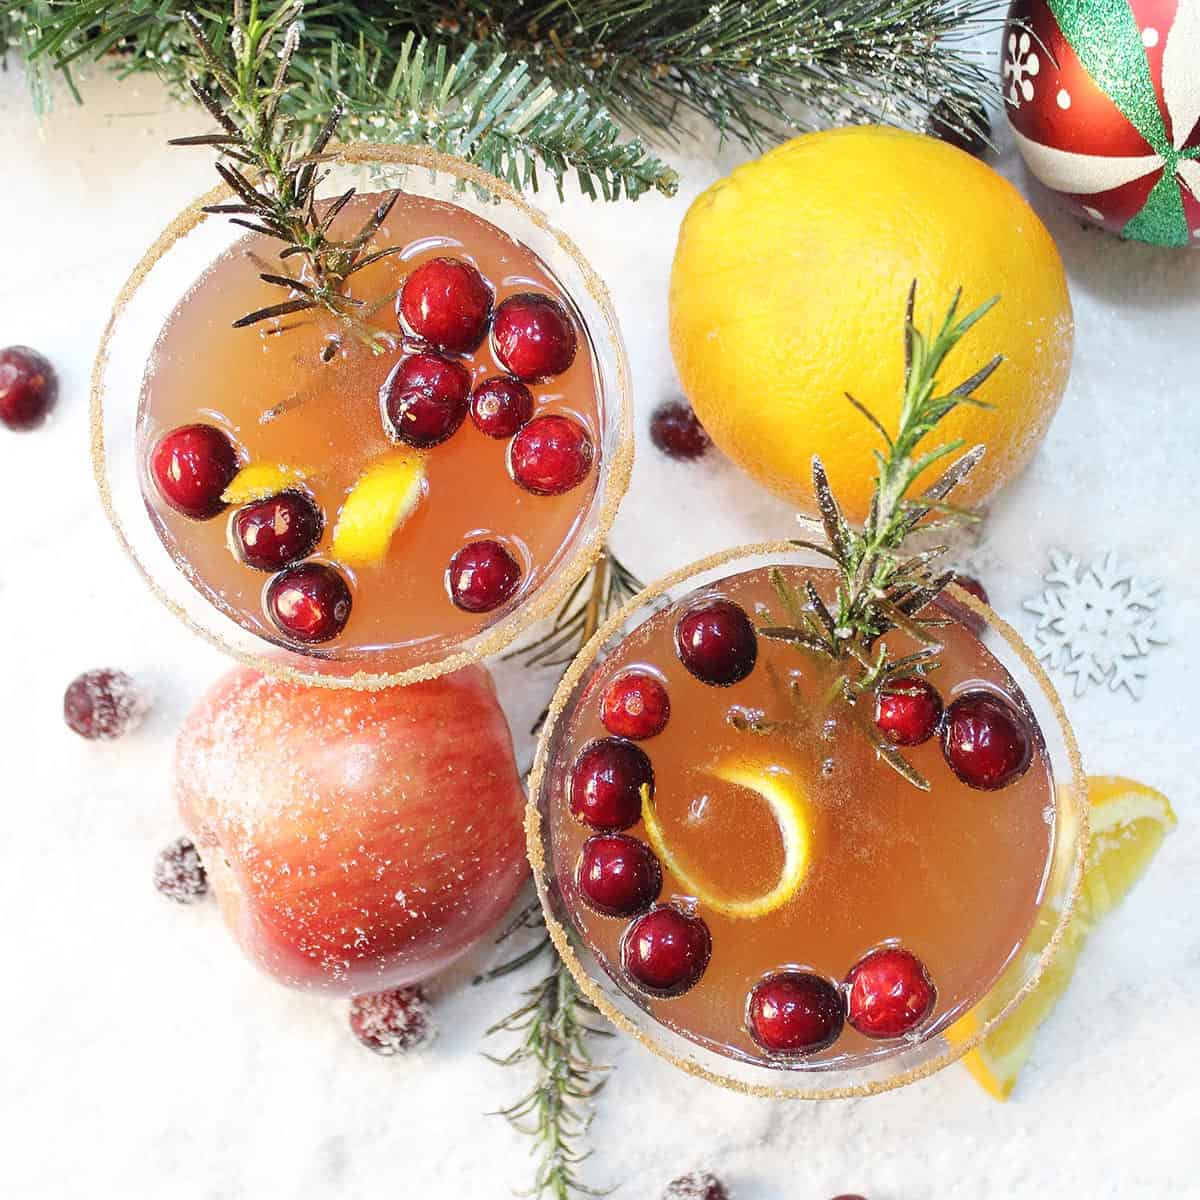 Overhead of cocktails on snow with orange apple and ornament around them.